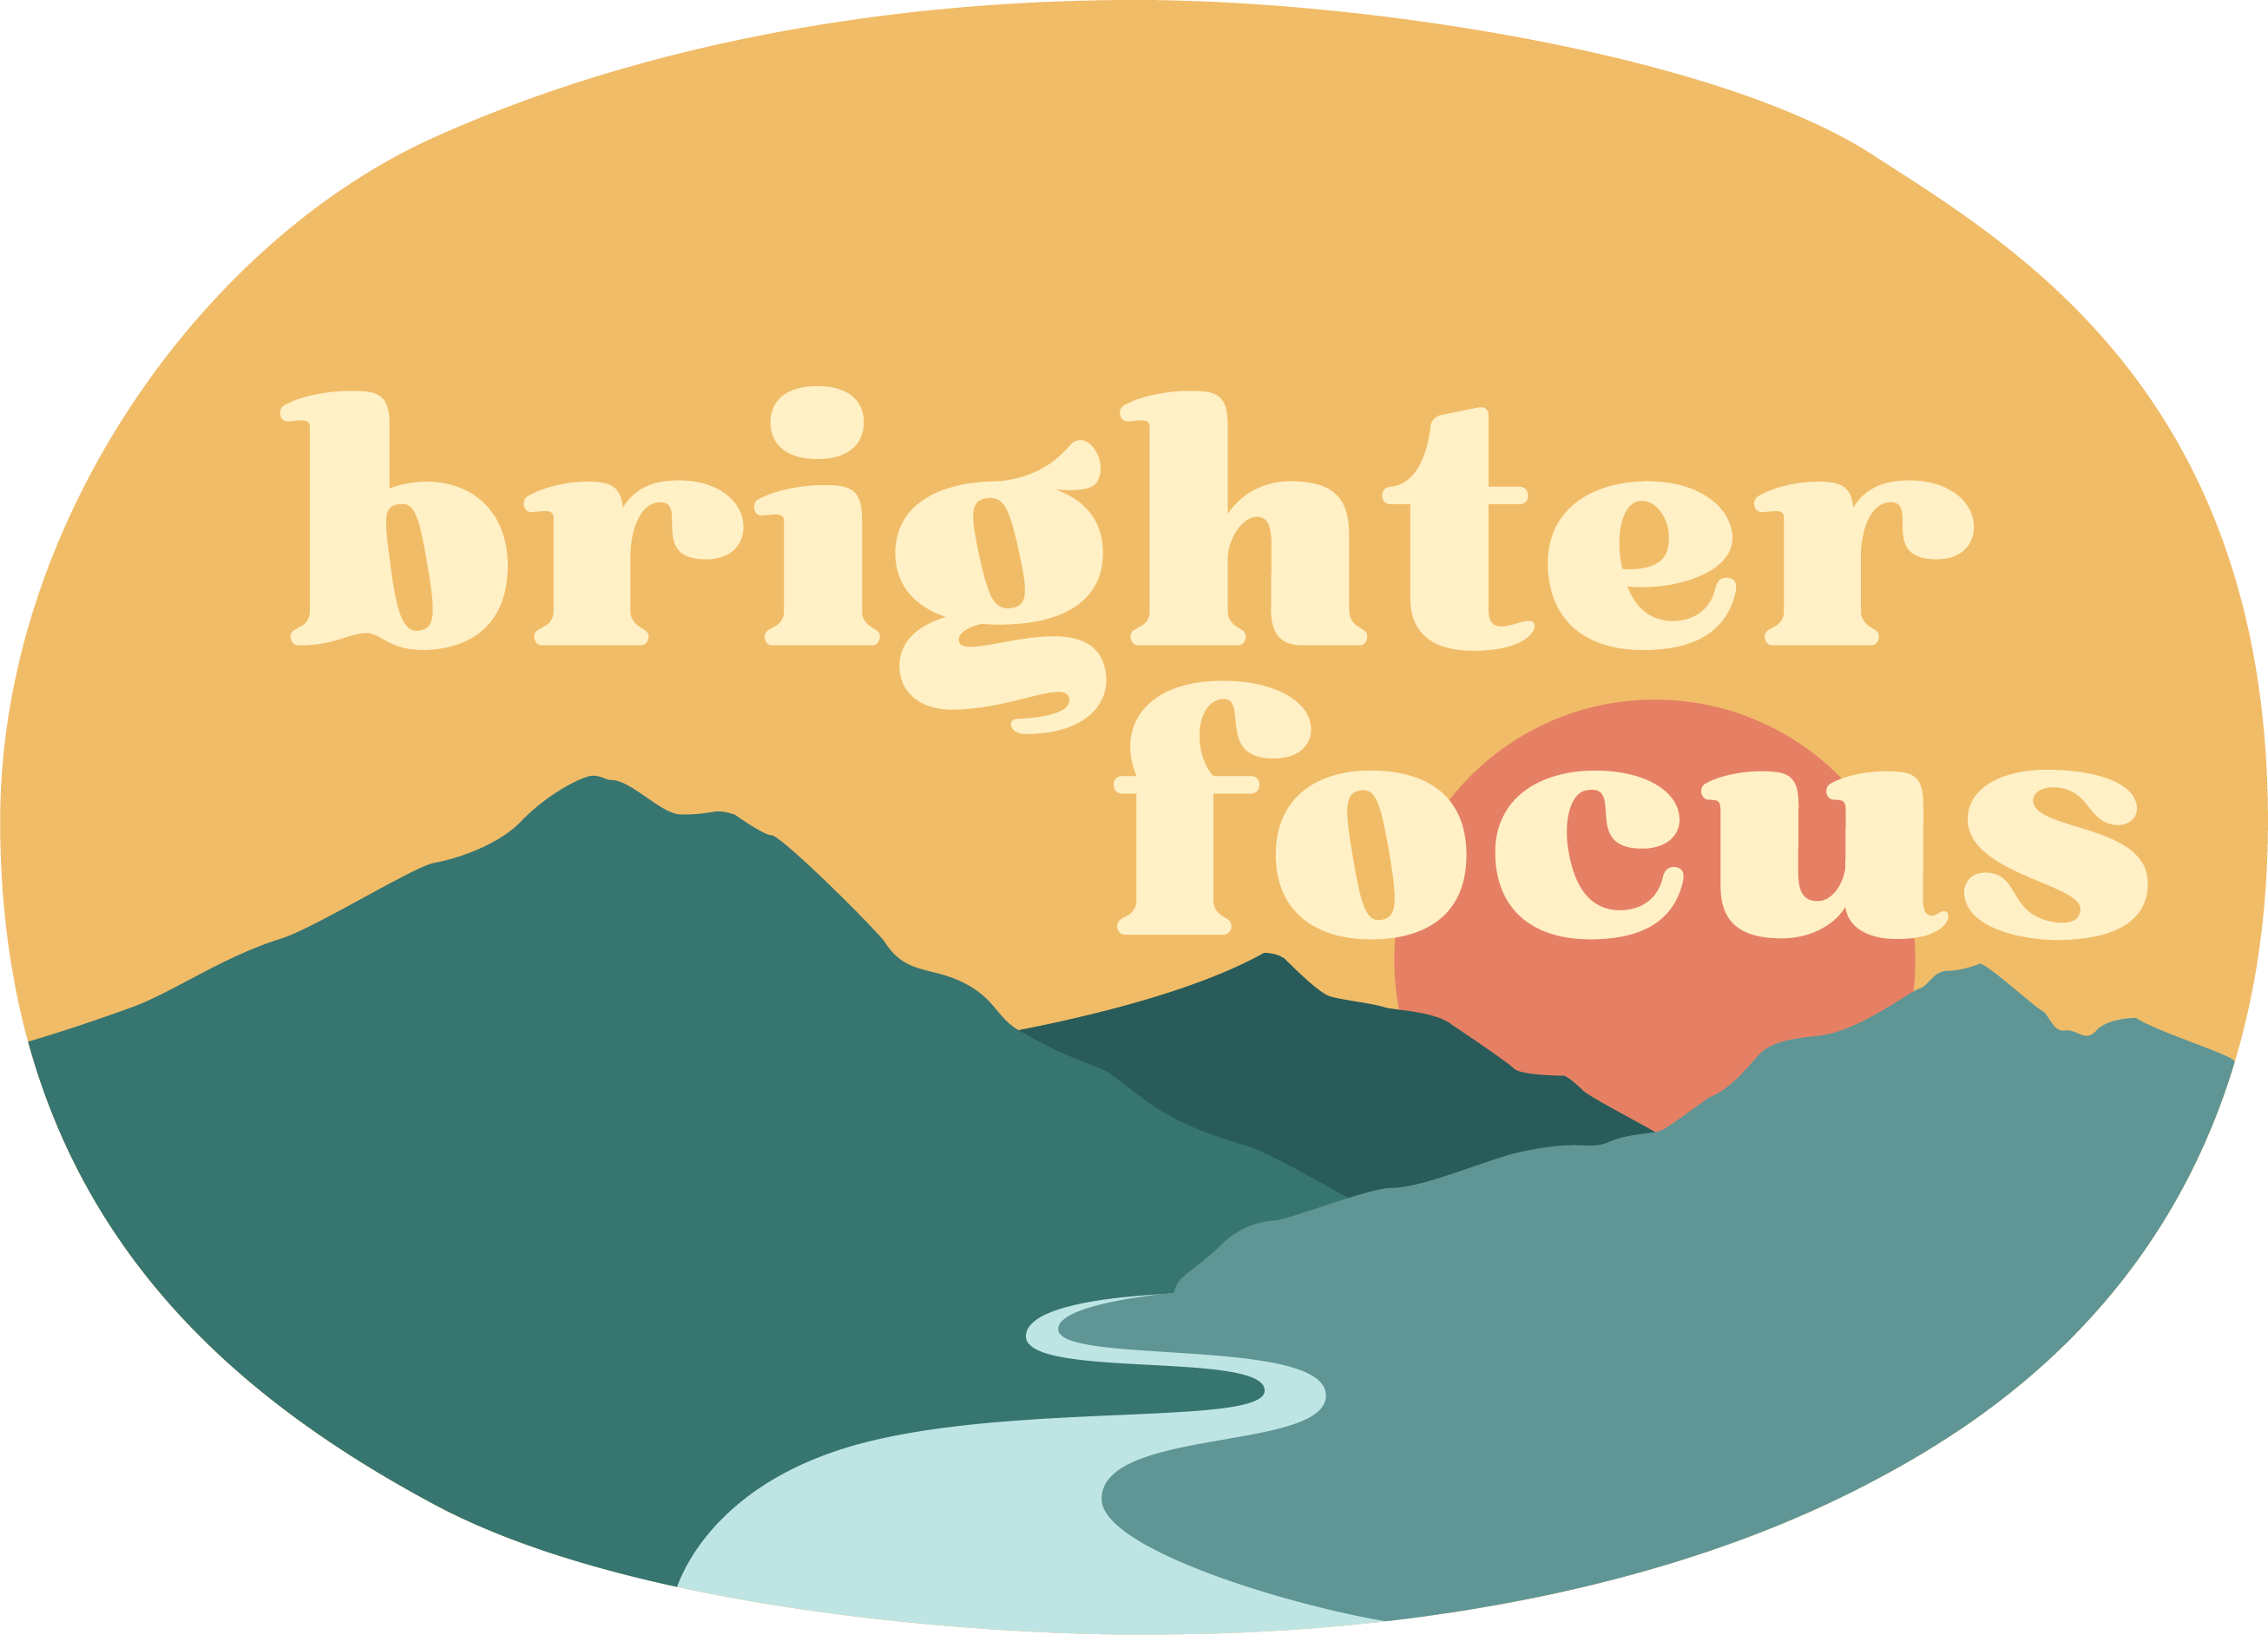 brighter focus yellow background with green mountains, blue river, and orange sun. tag: february 2021 self-care